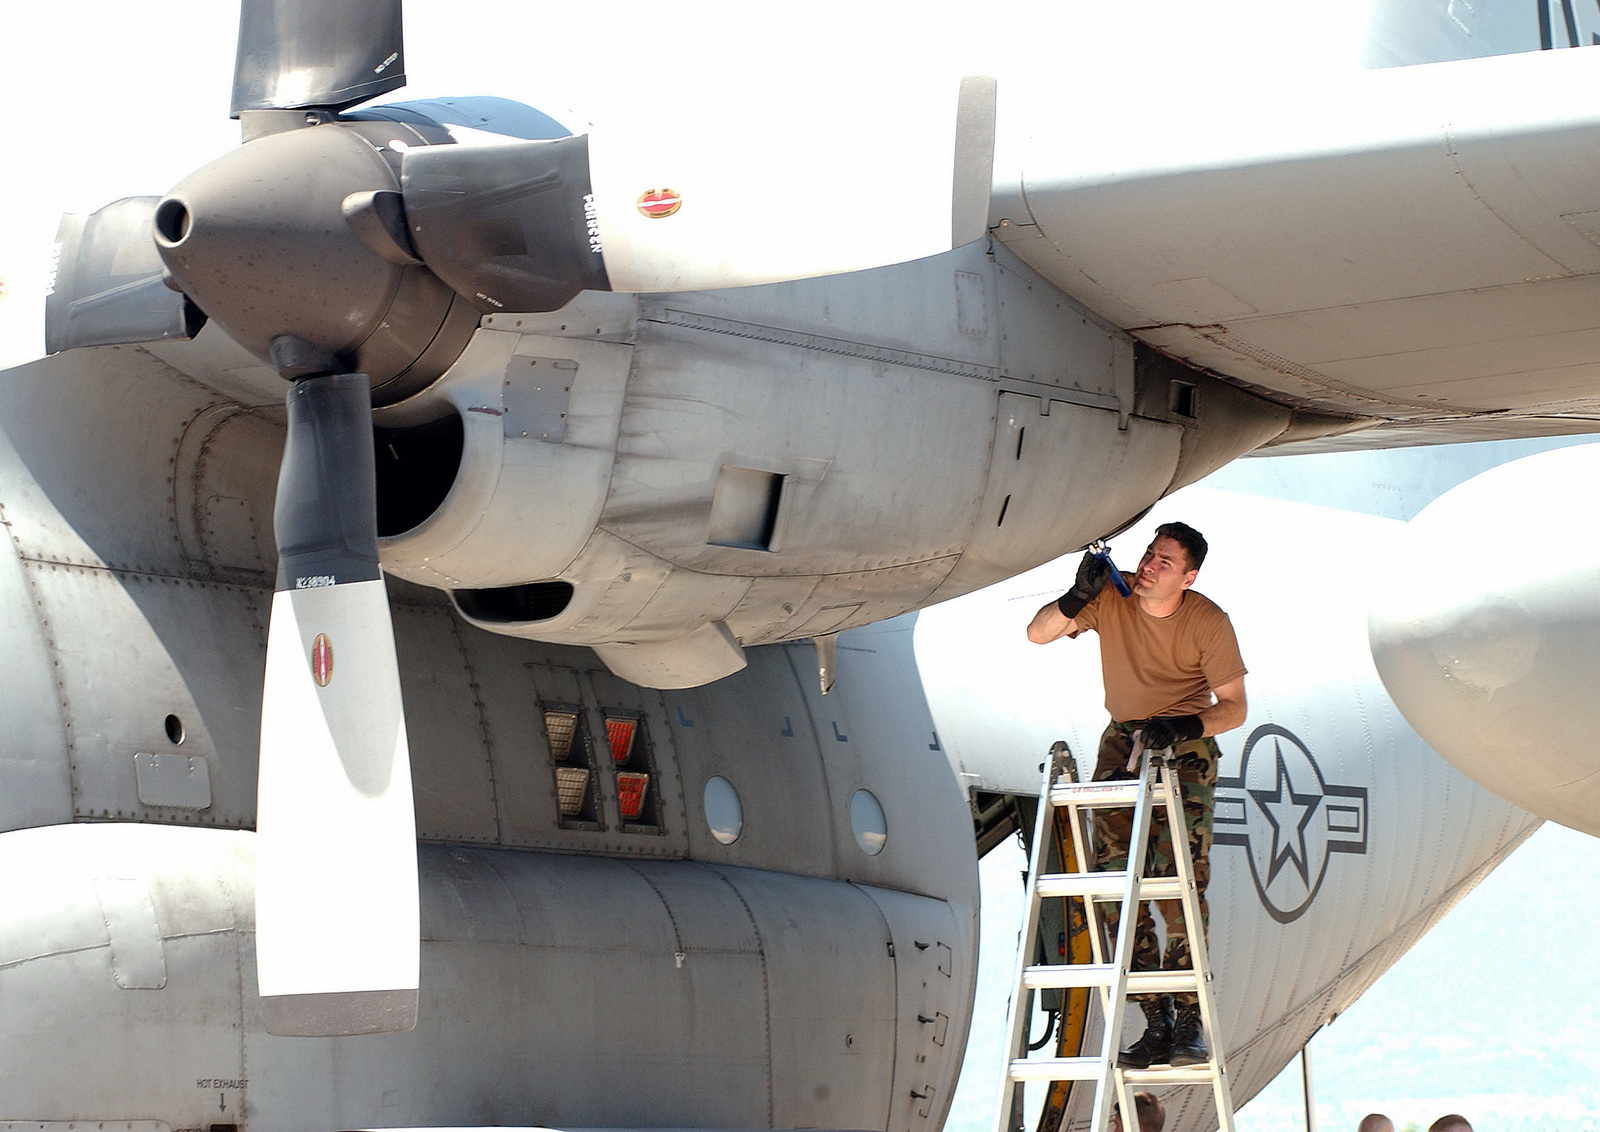 US Air Force (USAF) Technical Sergeant (TSGT) George Nunn, 37th Airlift Wing (AW) performs an intake and exhaust inspection on a USAF C-130 Hercules aircraft on the flight line at Aviano Air Base (AB), Italy